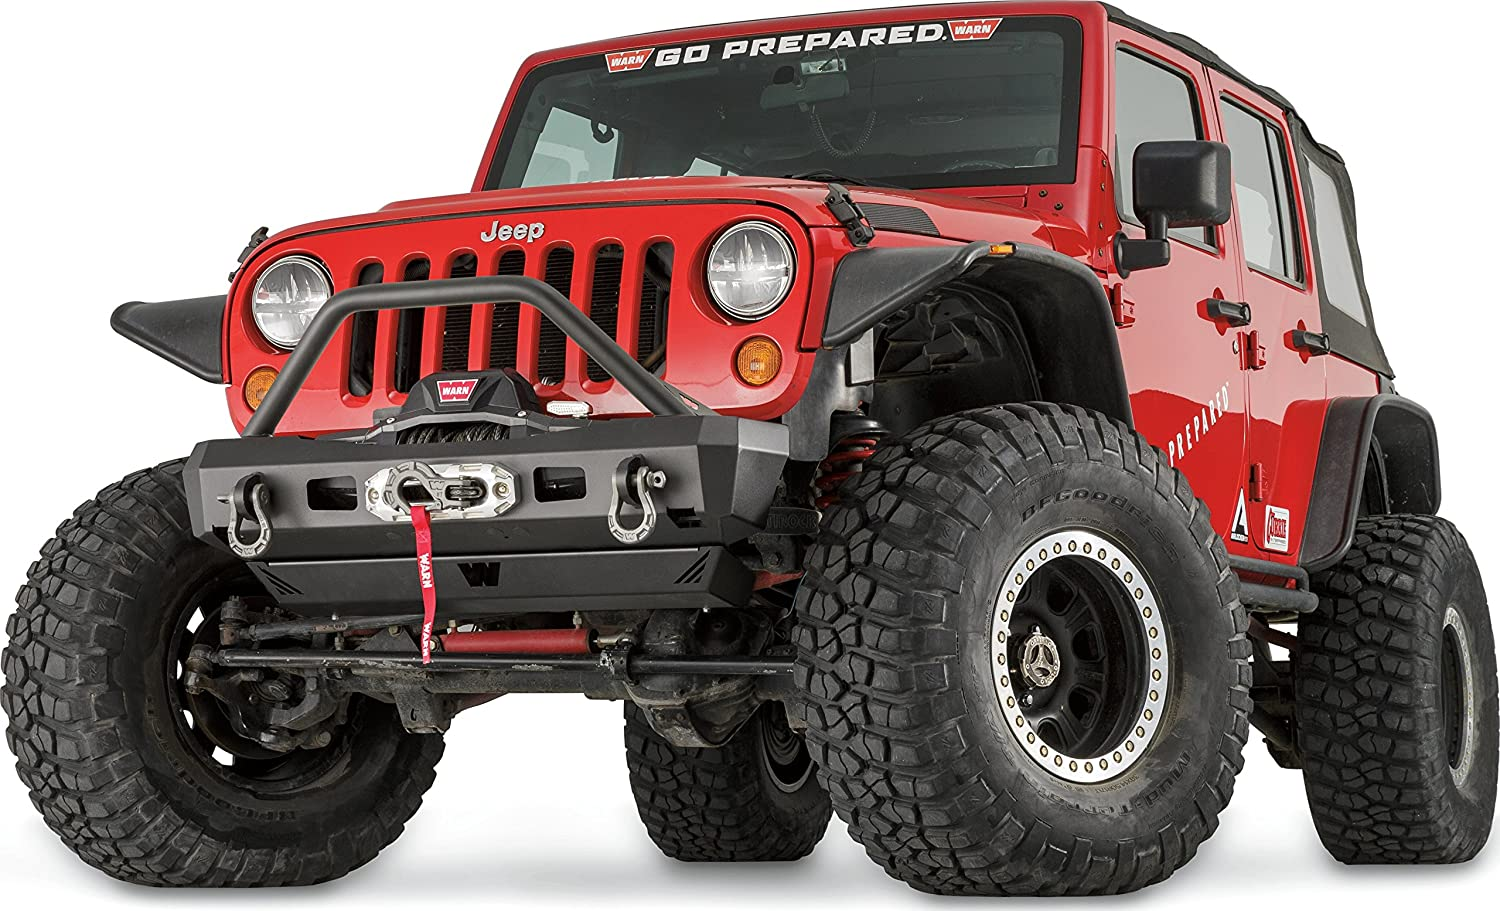 with Grille Guard Tube WARN 101465 Elite Series Full-Width Front Bumper for Jeep JK Wrangler